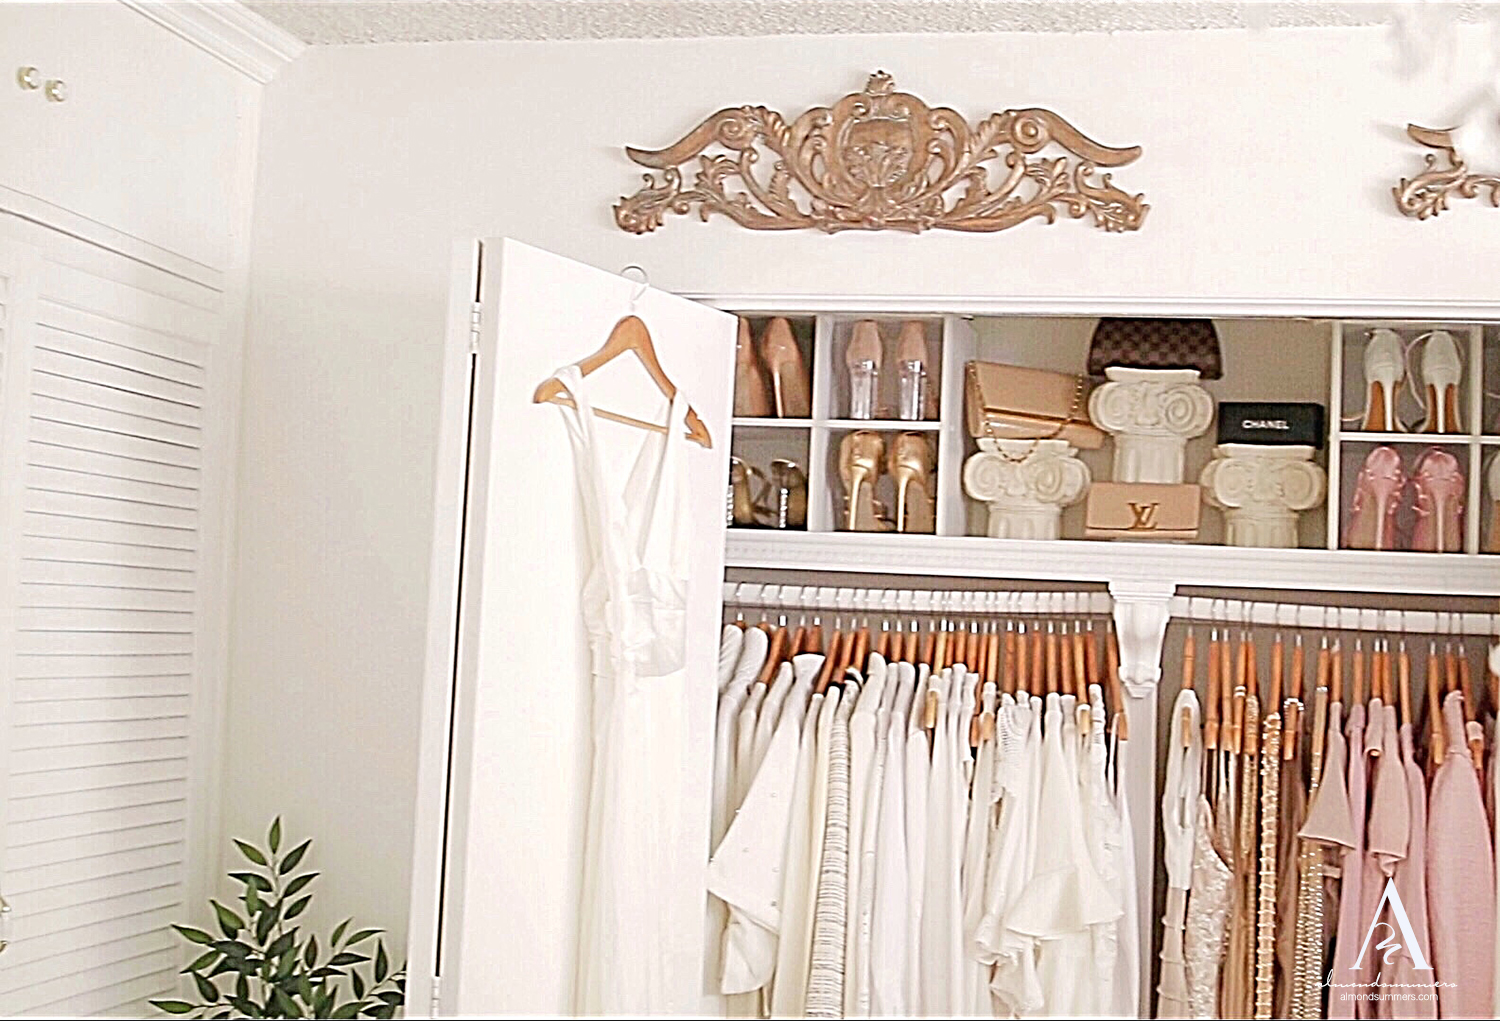 Organize Closet By Color Closet Decorating Ideas | How To Decorate Your Closet | DIY Closet Organization | Organizing a Small Closet | DIY Closet Shelves Small closet organization ideas